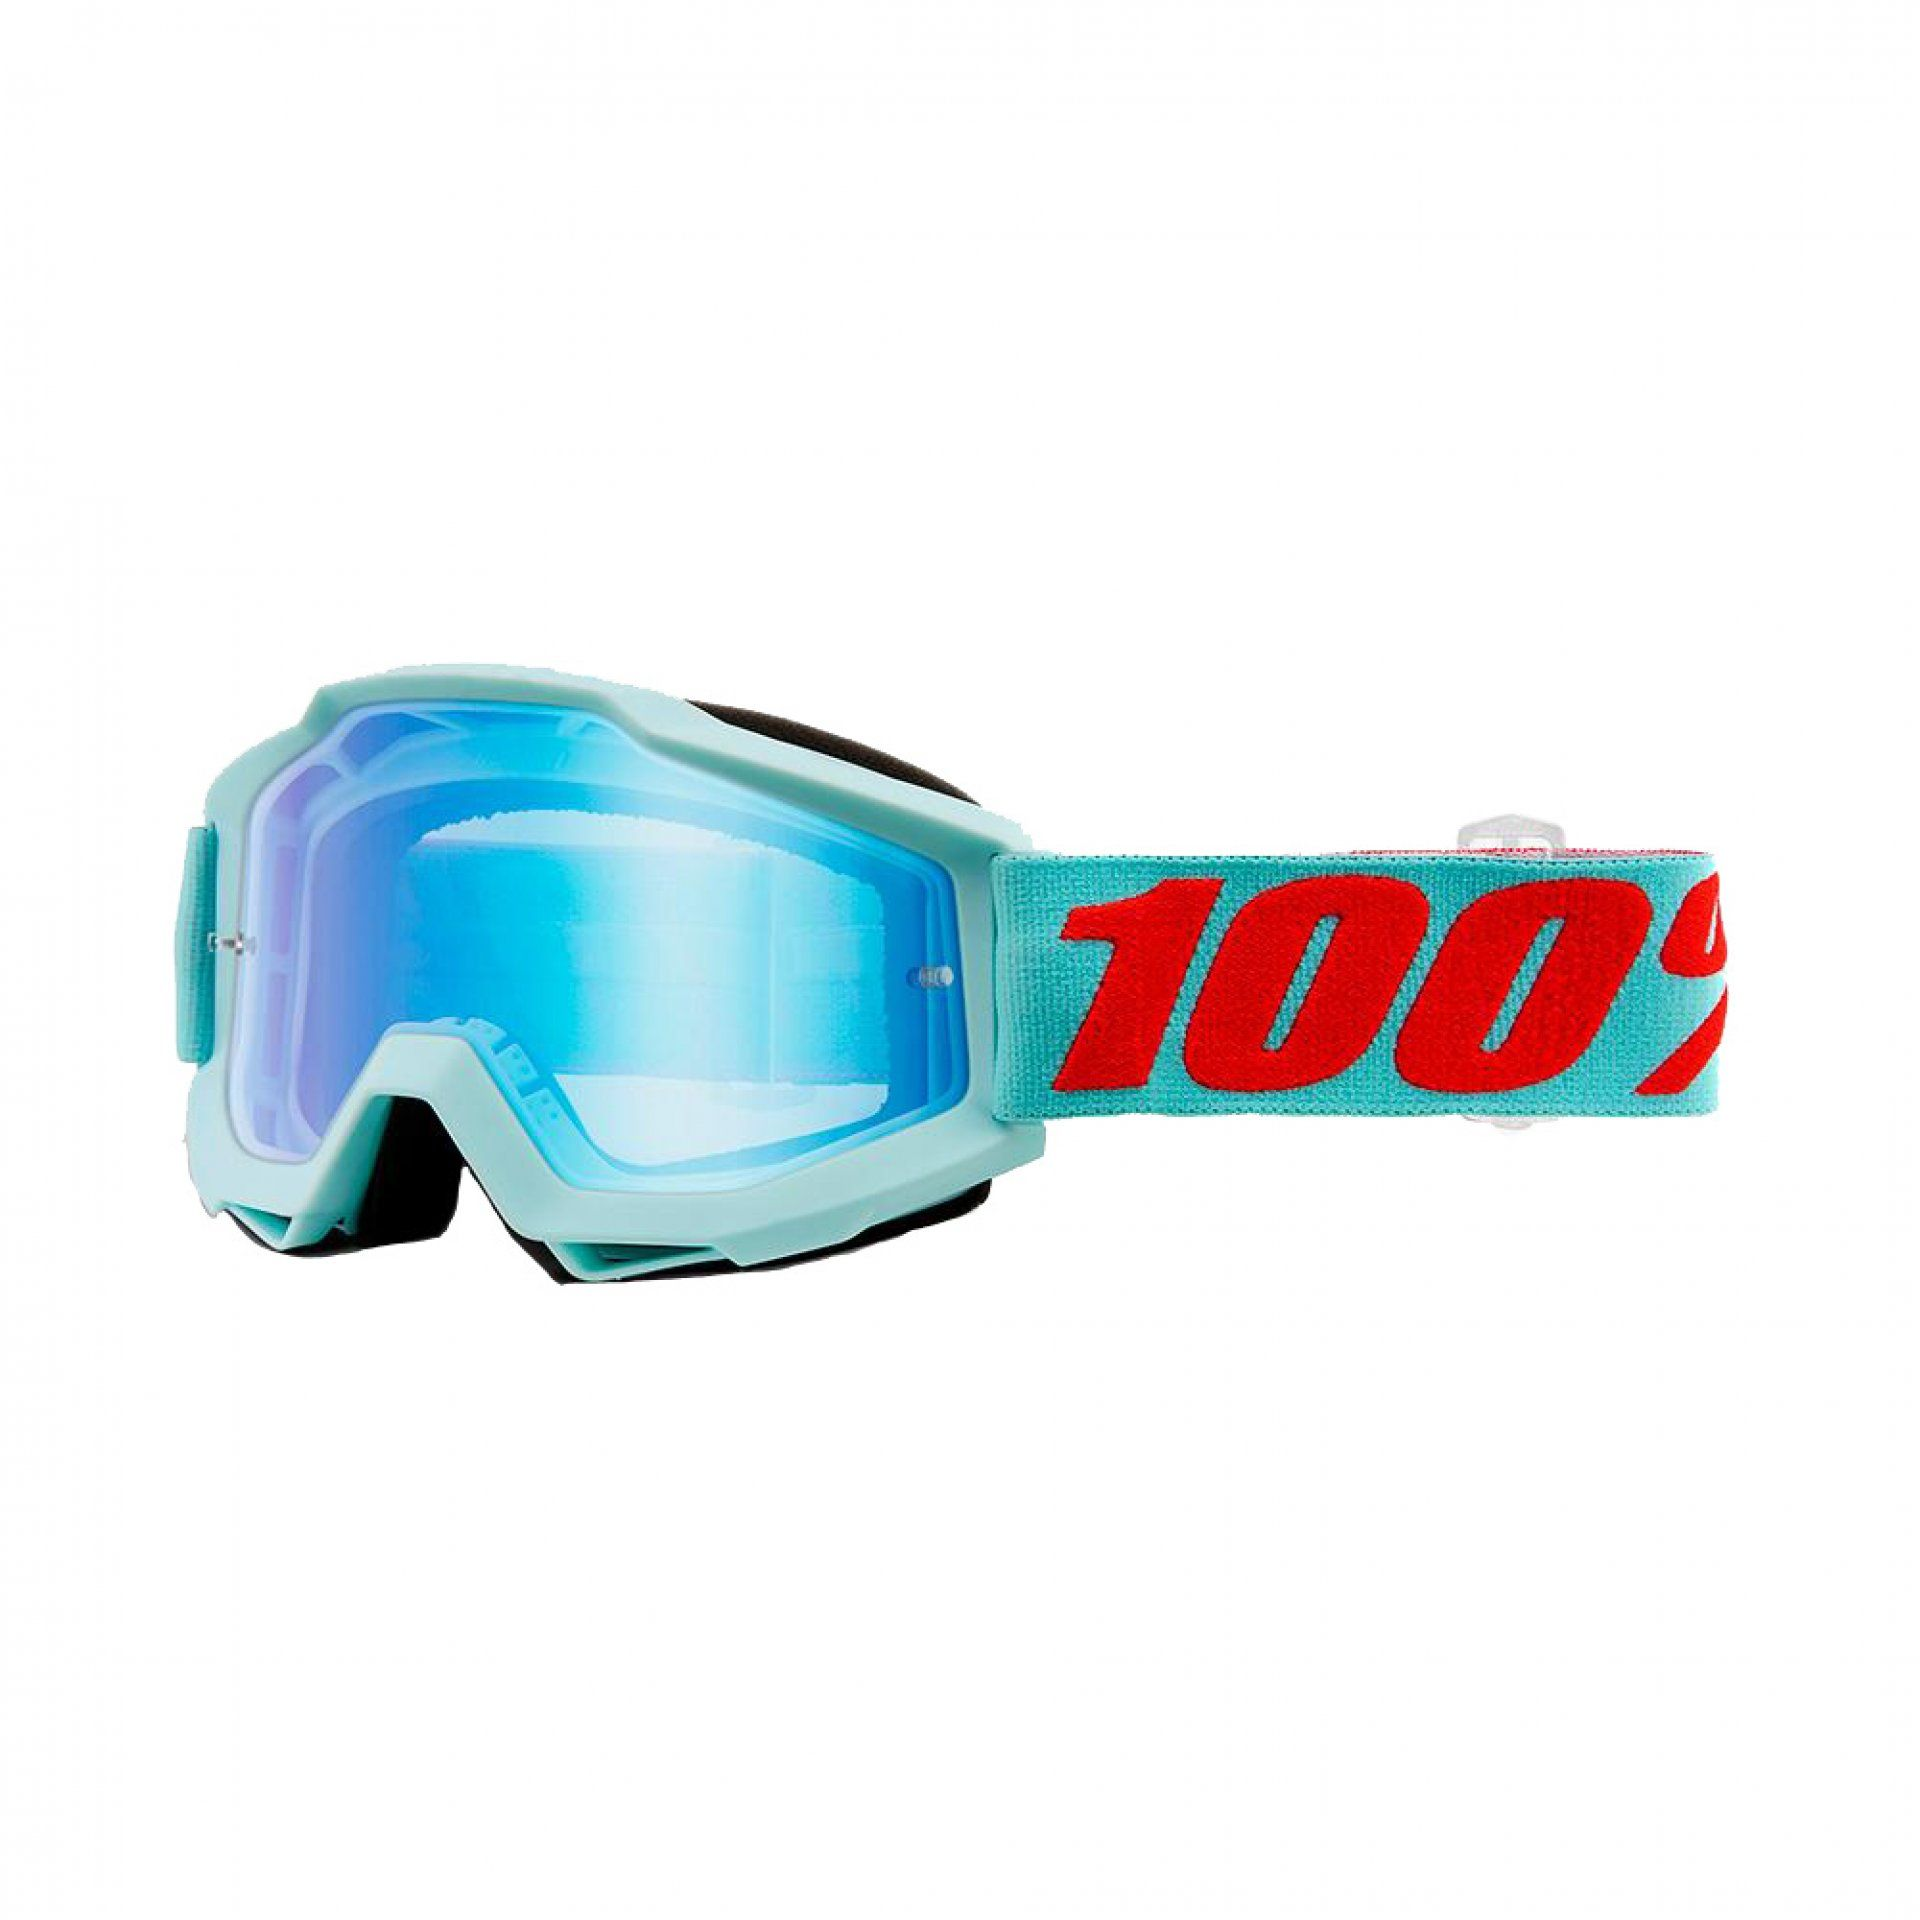 GOGLE ROWEROWE 100% ACCURI MALDIVES|MIRROR BLUE FLASH 1